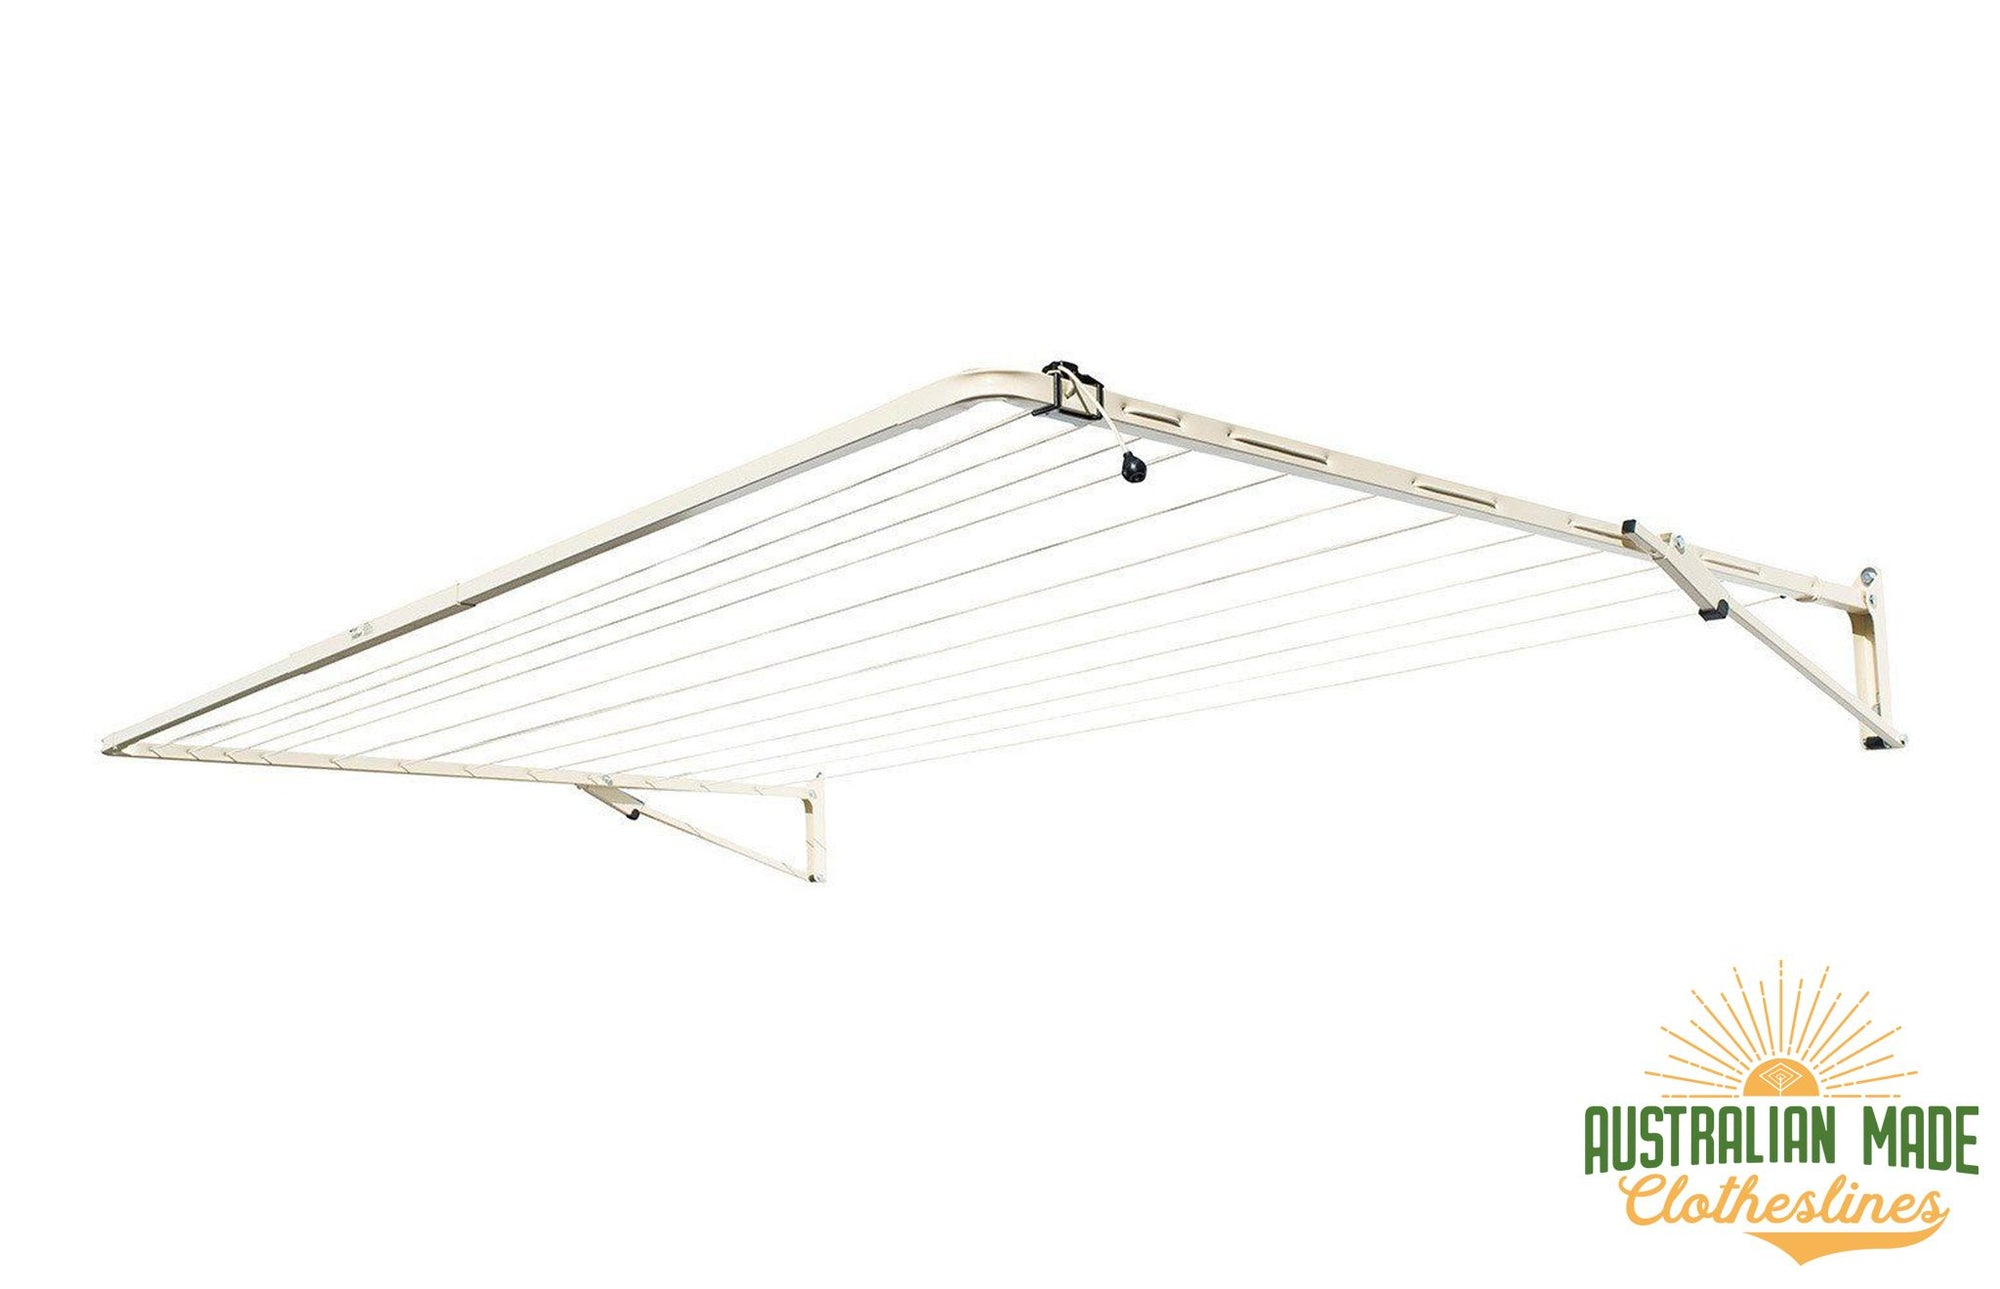 Austral Standard 28 Clothesline - Classic Cream Right Side Perspective - Australian Made Clotheslines